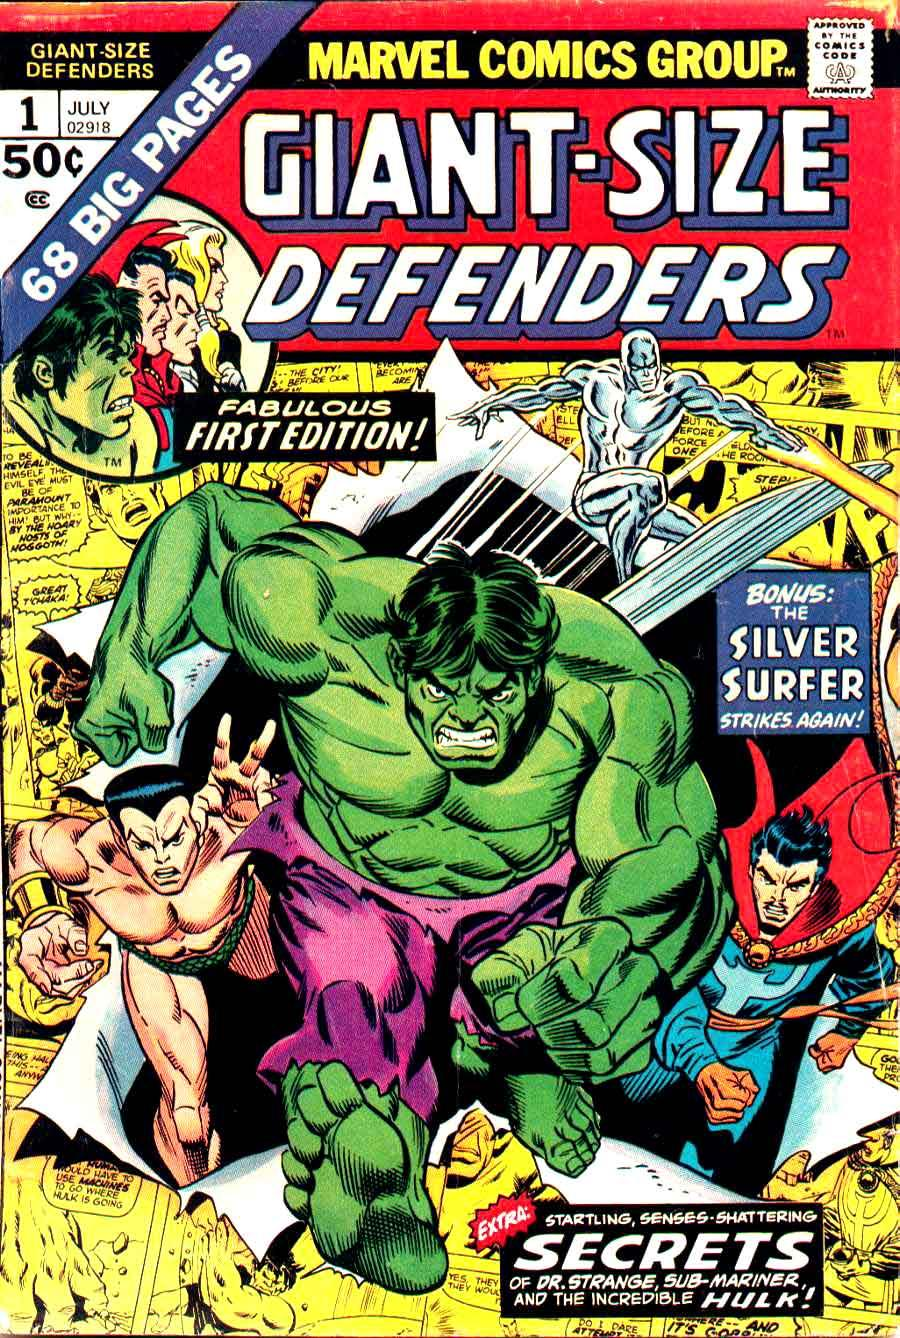 Giant-Size Defenders Vol. 1 #1